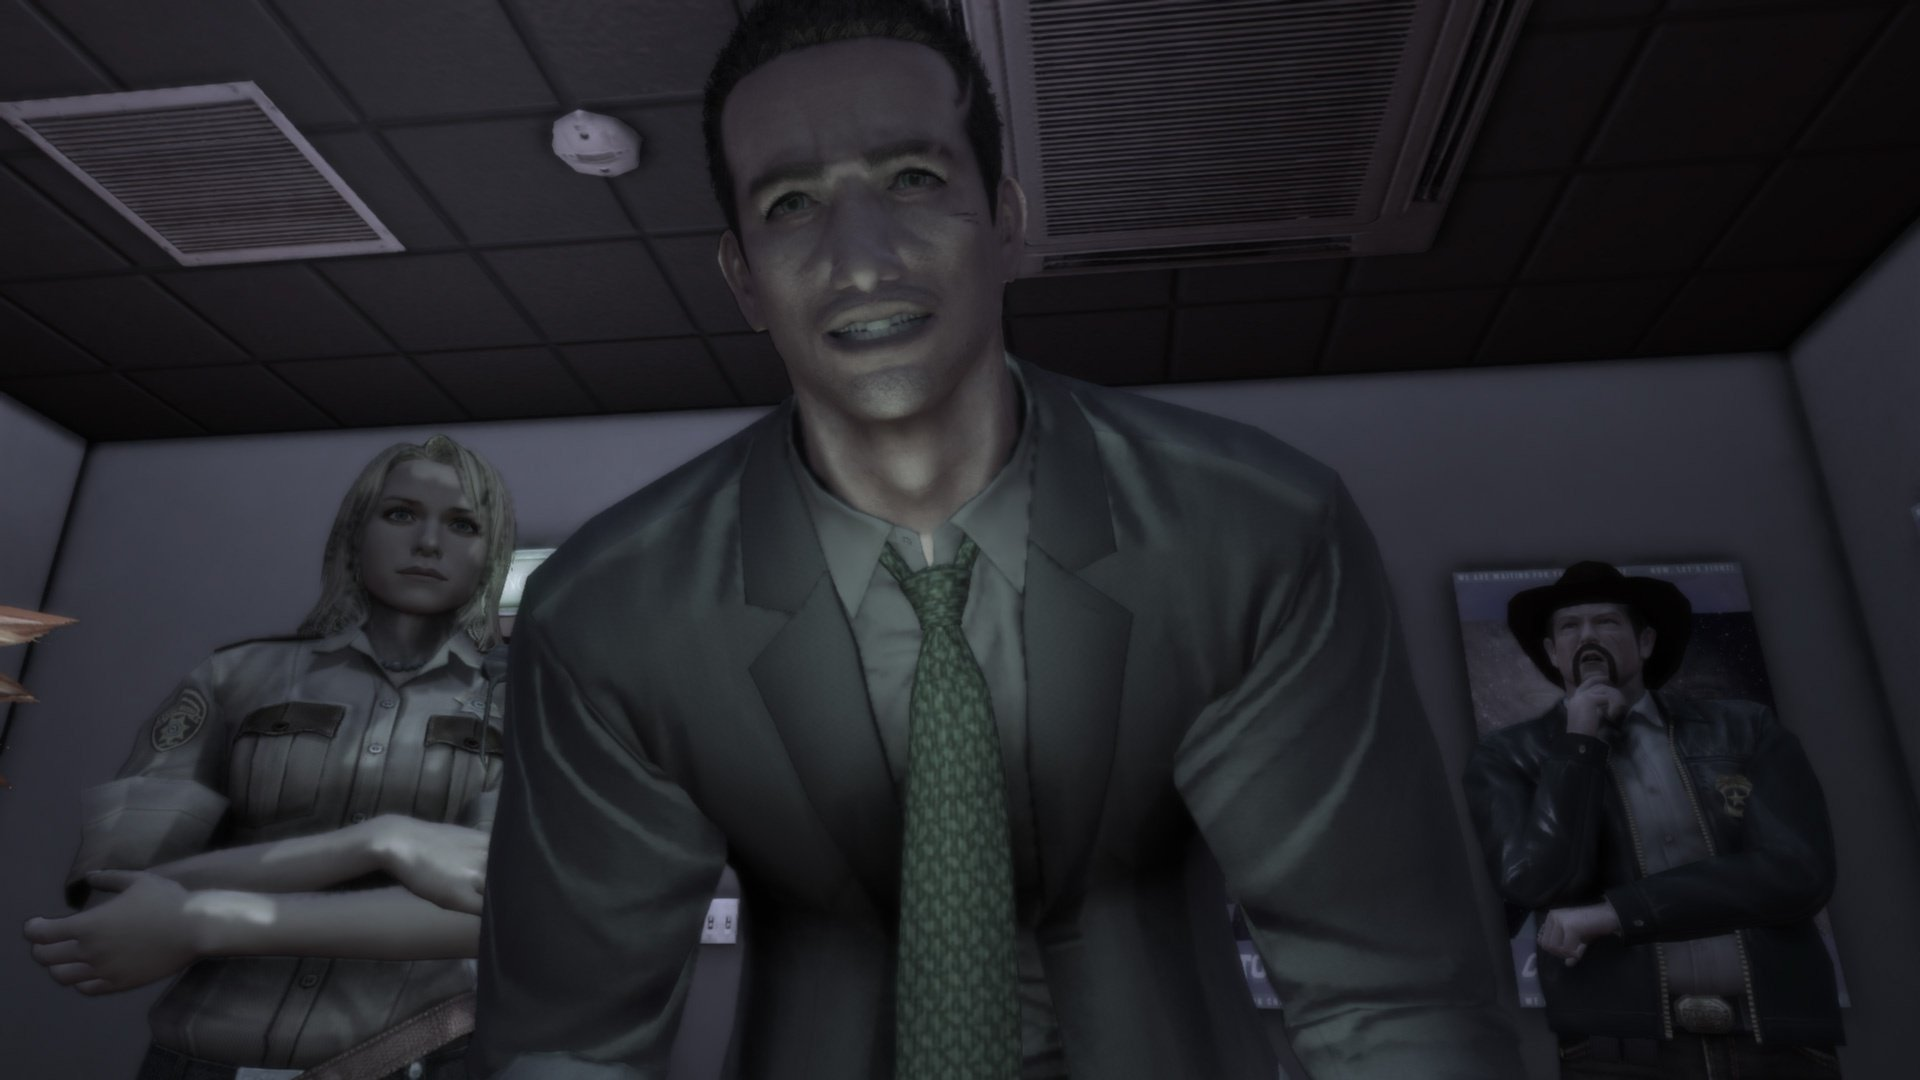 Is it possible to make a sequel to Deadly Premonition without losing what made the original so unique? screenshot